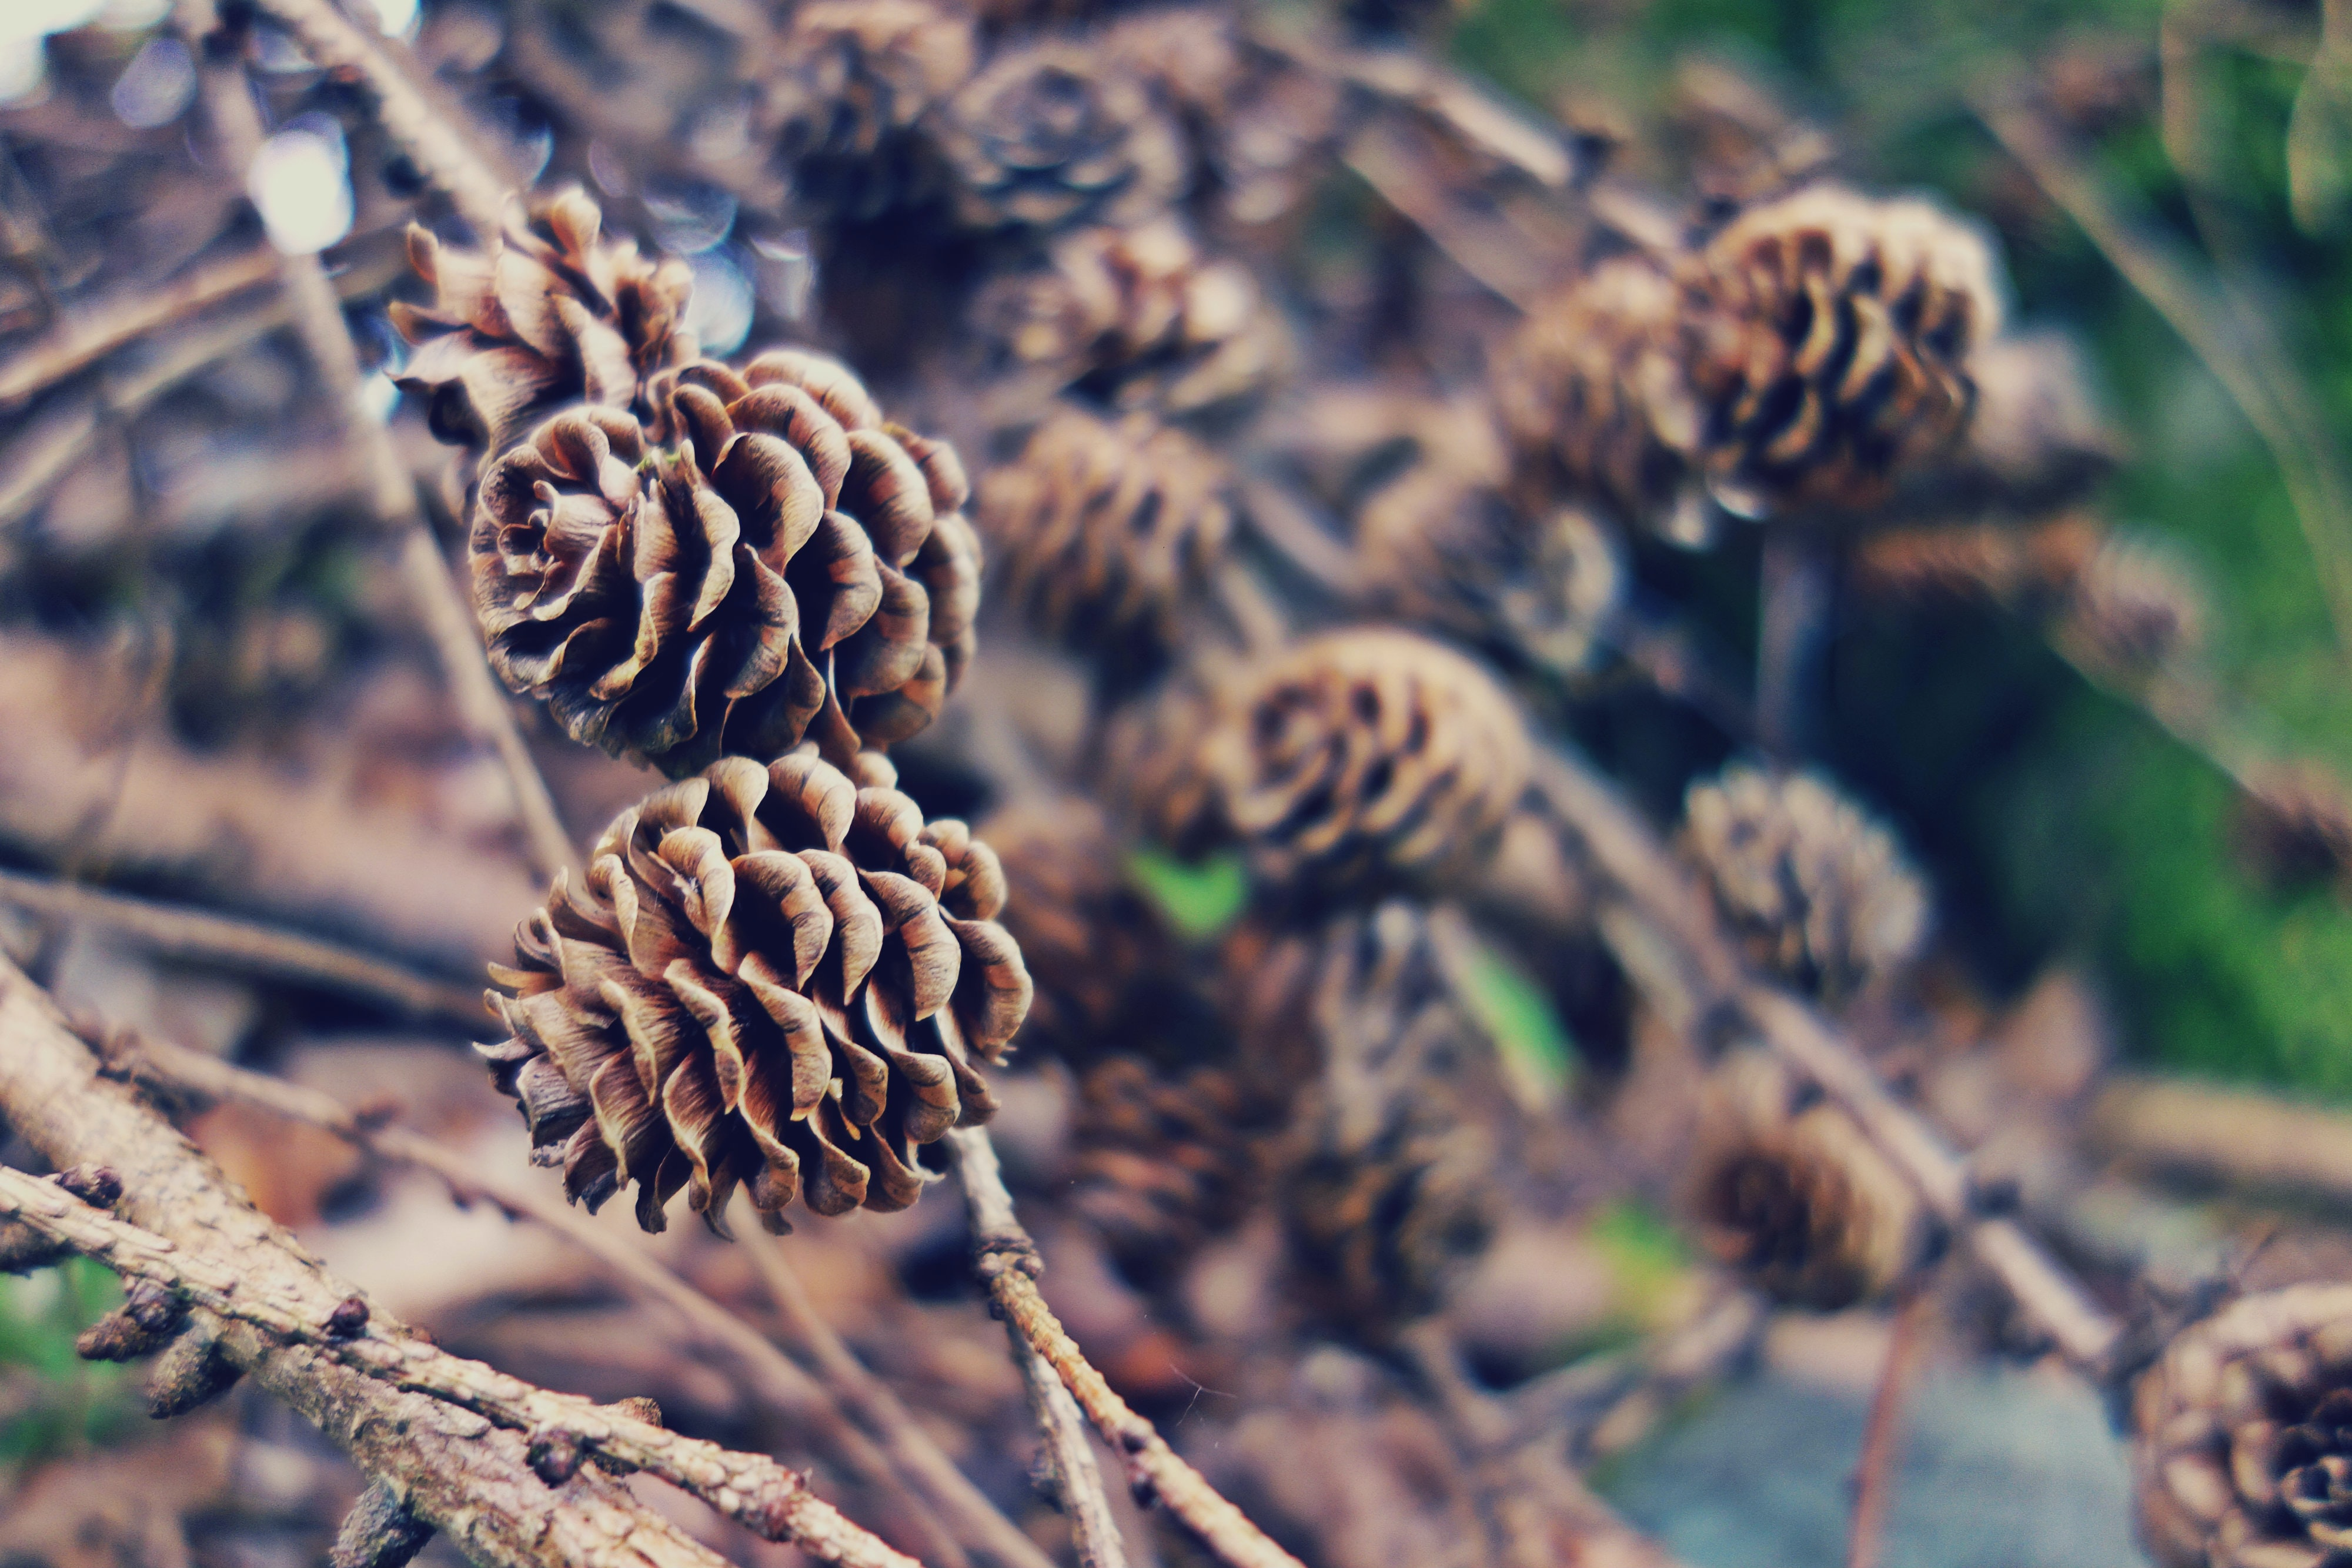 Pinecones on branches.